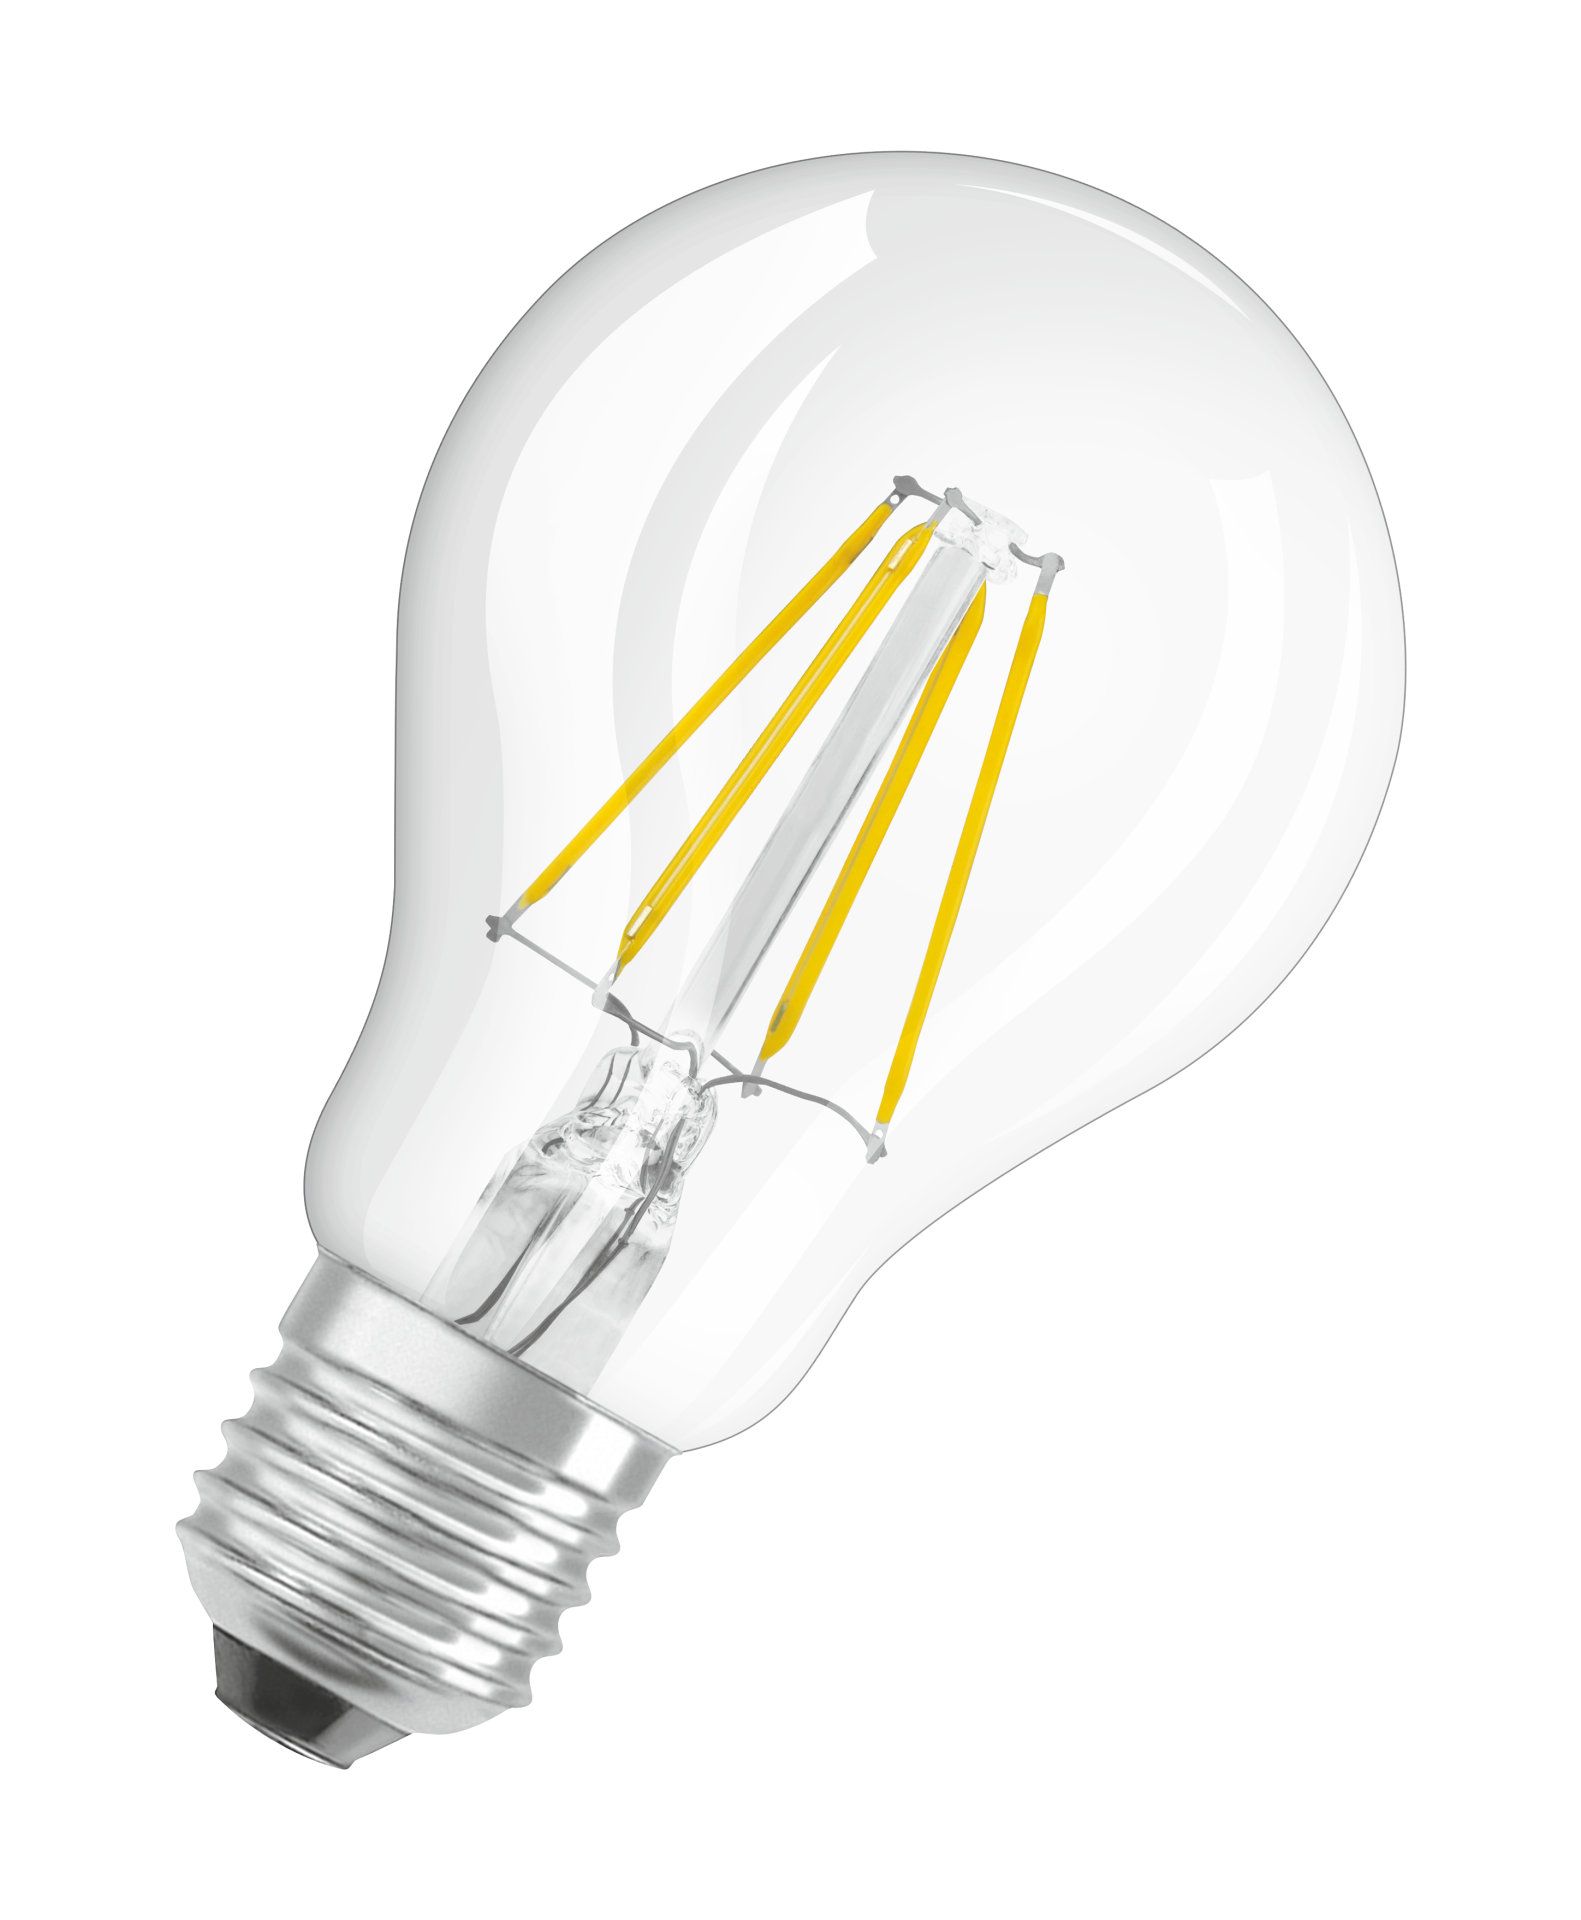 Consumer LED lamps with filament-style LED technology